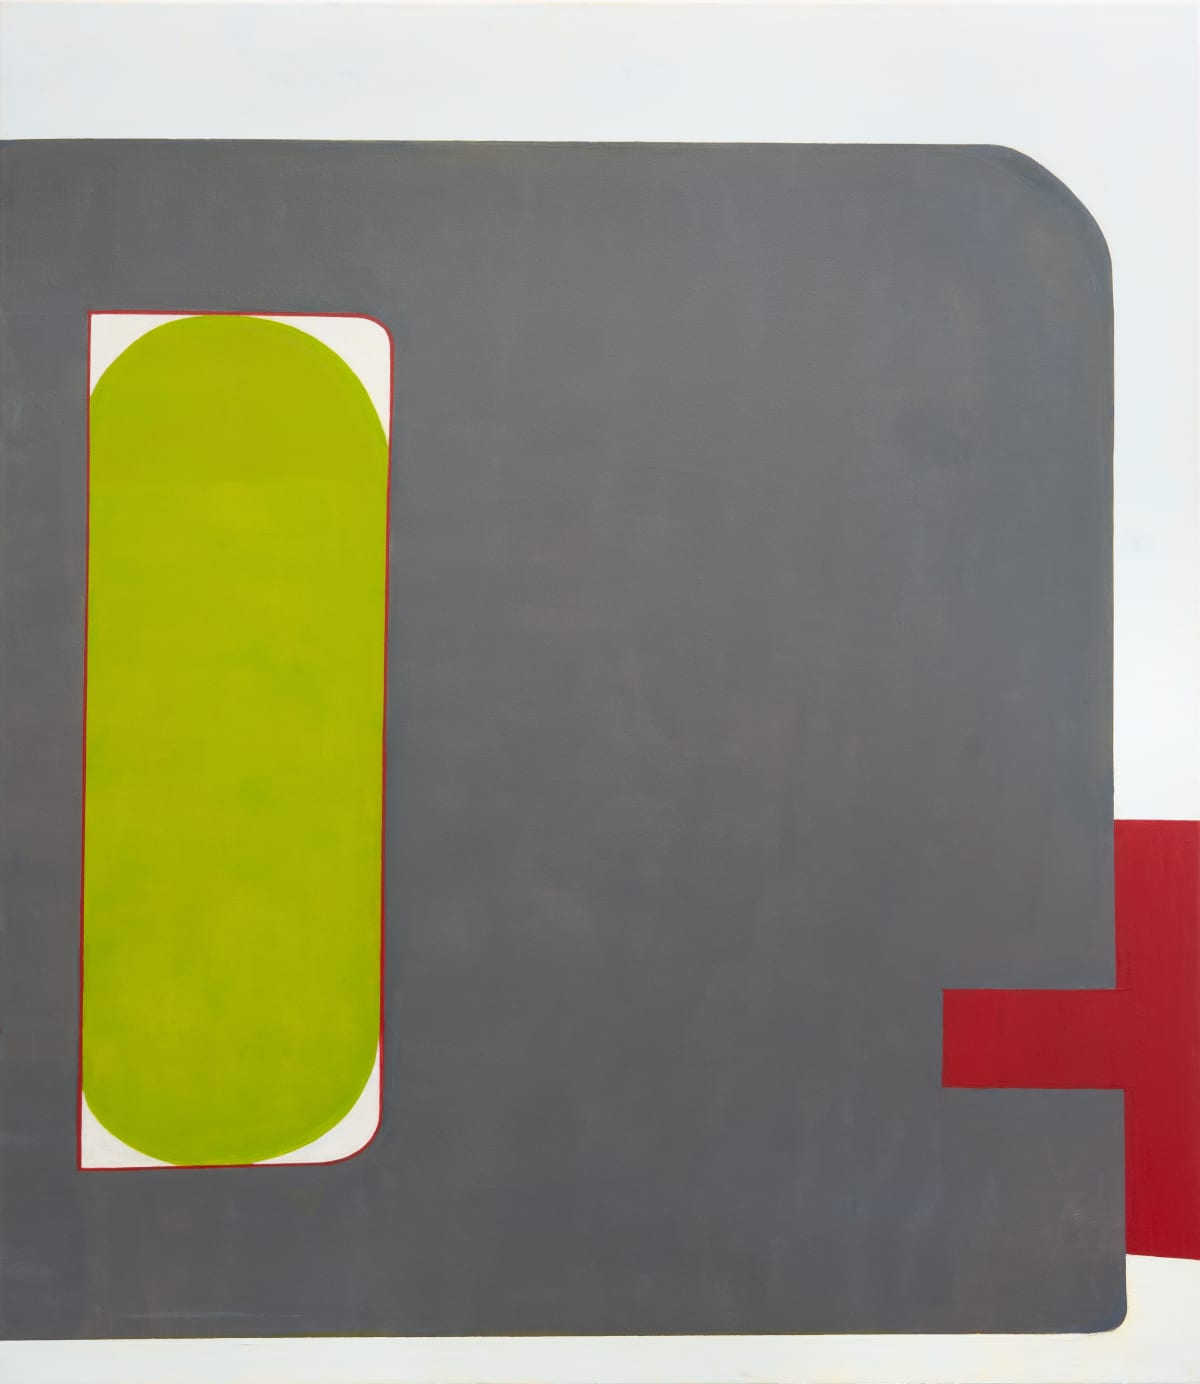 "Fran Shalom's ""Holding On"" done with oil on wood in shades of green, gray and red. There is a clear contrast with bright and dark colors in regards to the shapes. The shape looks like an object with a handle that can be held on as the title suggests."